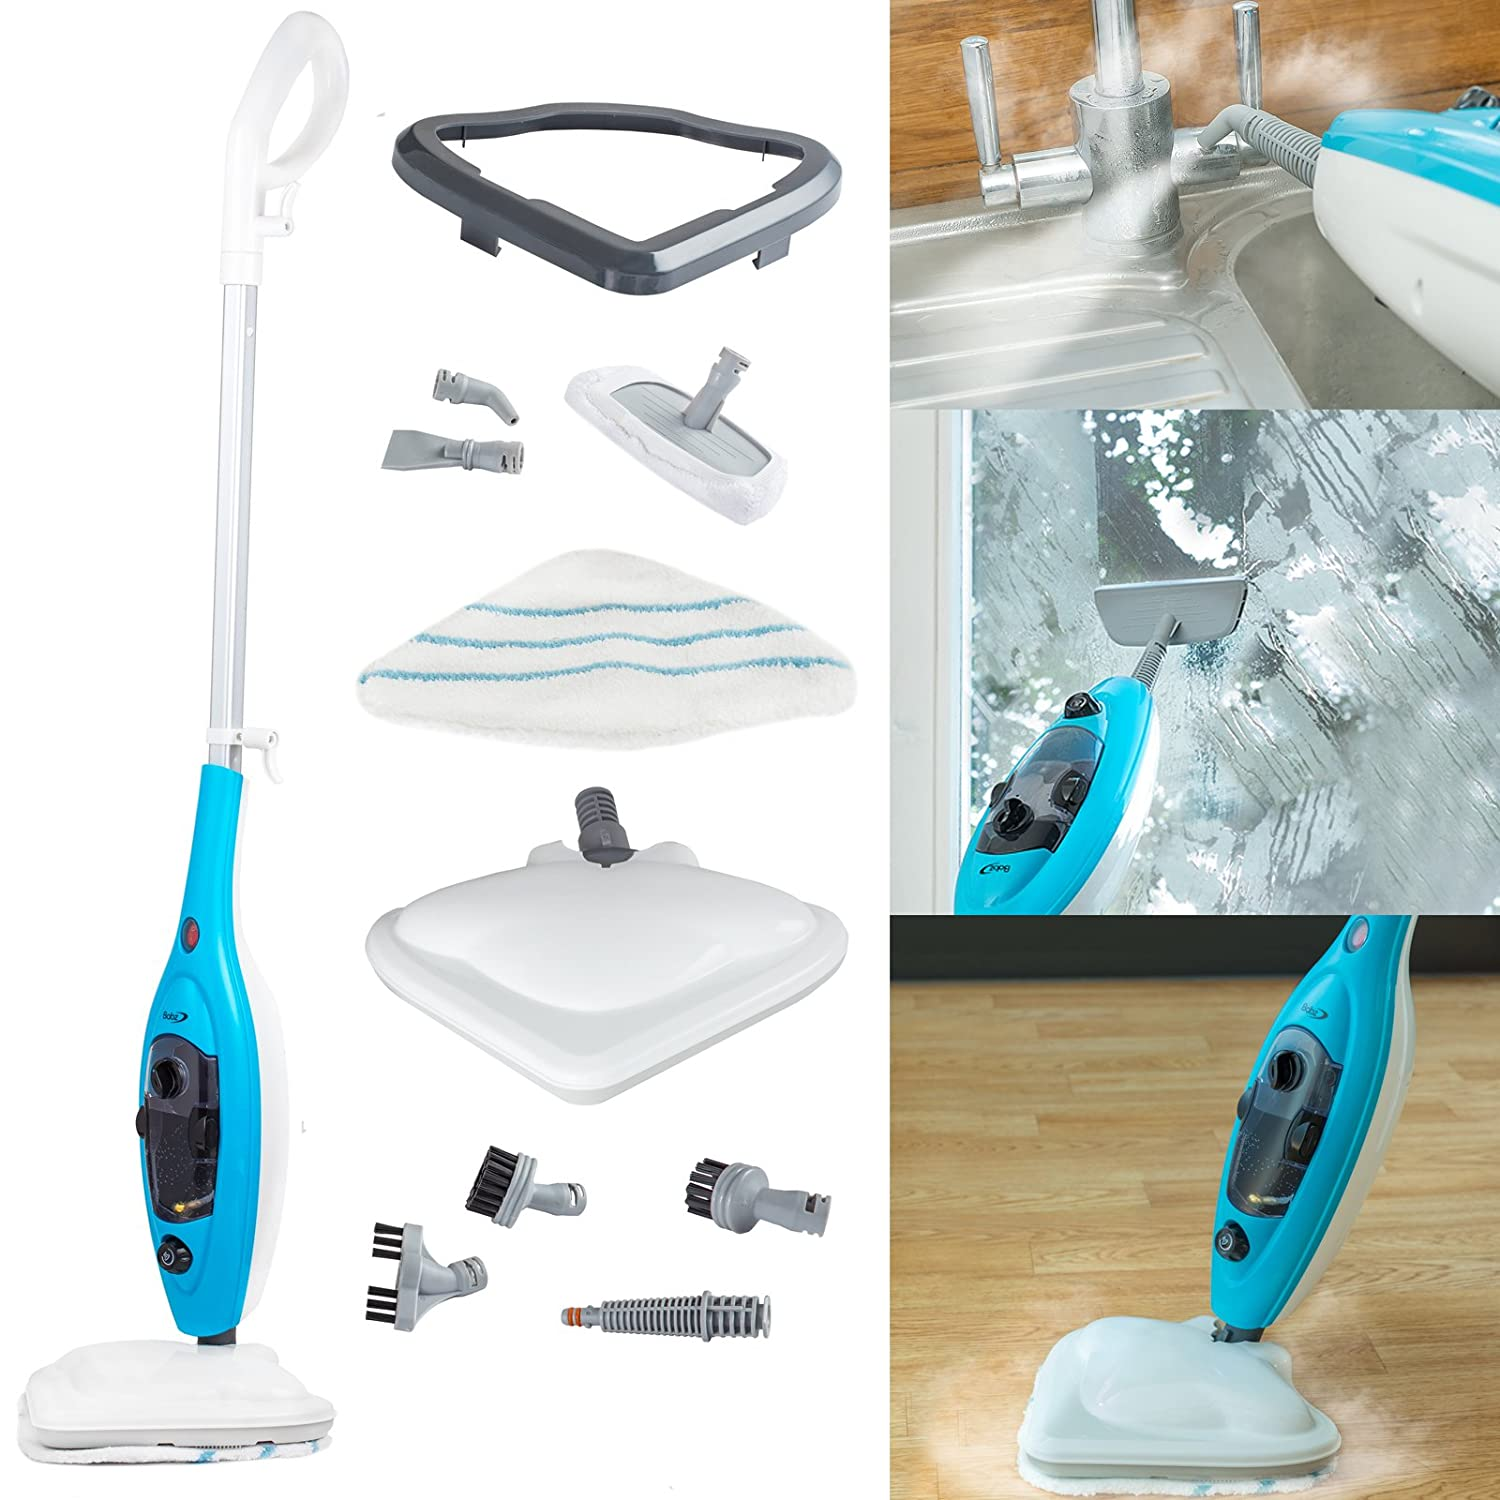 Babz 10 in 1 Steam Cleaner Mop Hand Held: Amazon.co.uk: Kitchen & Home